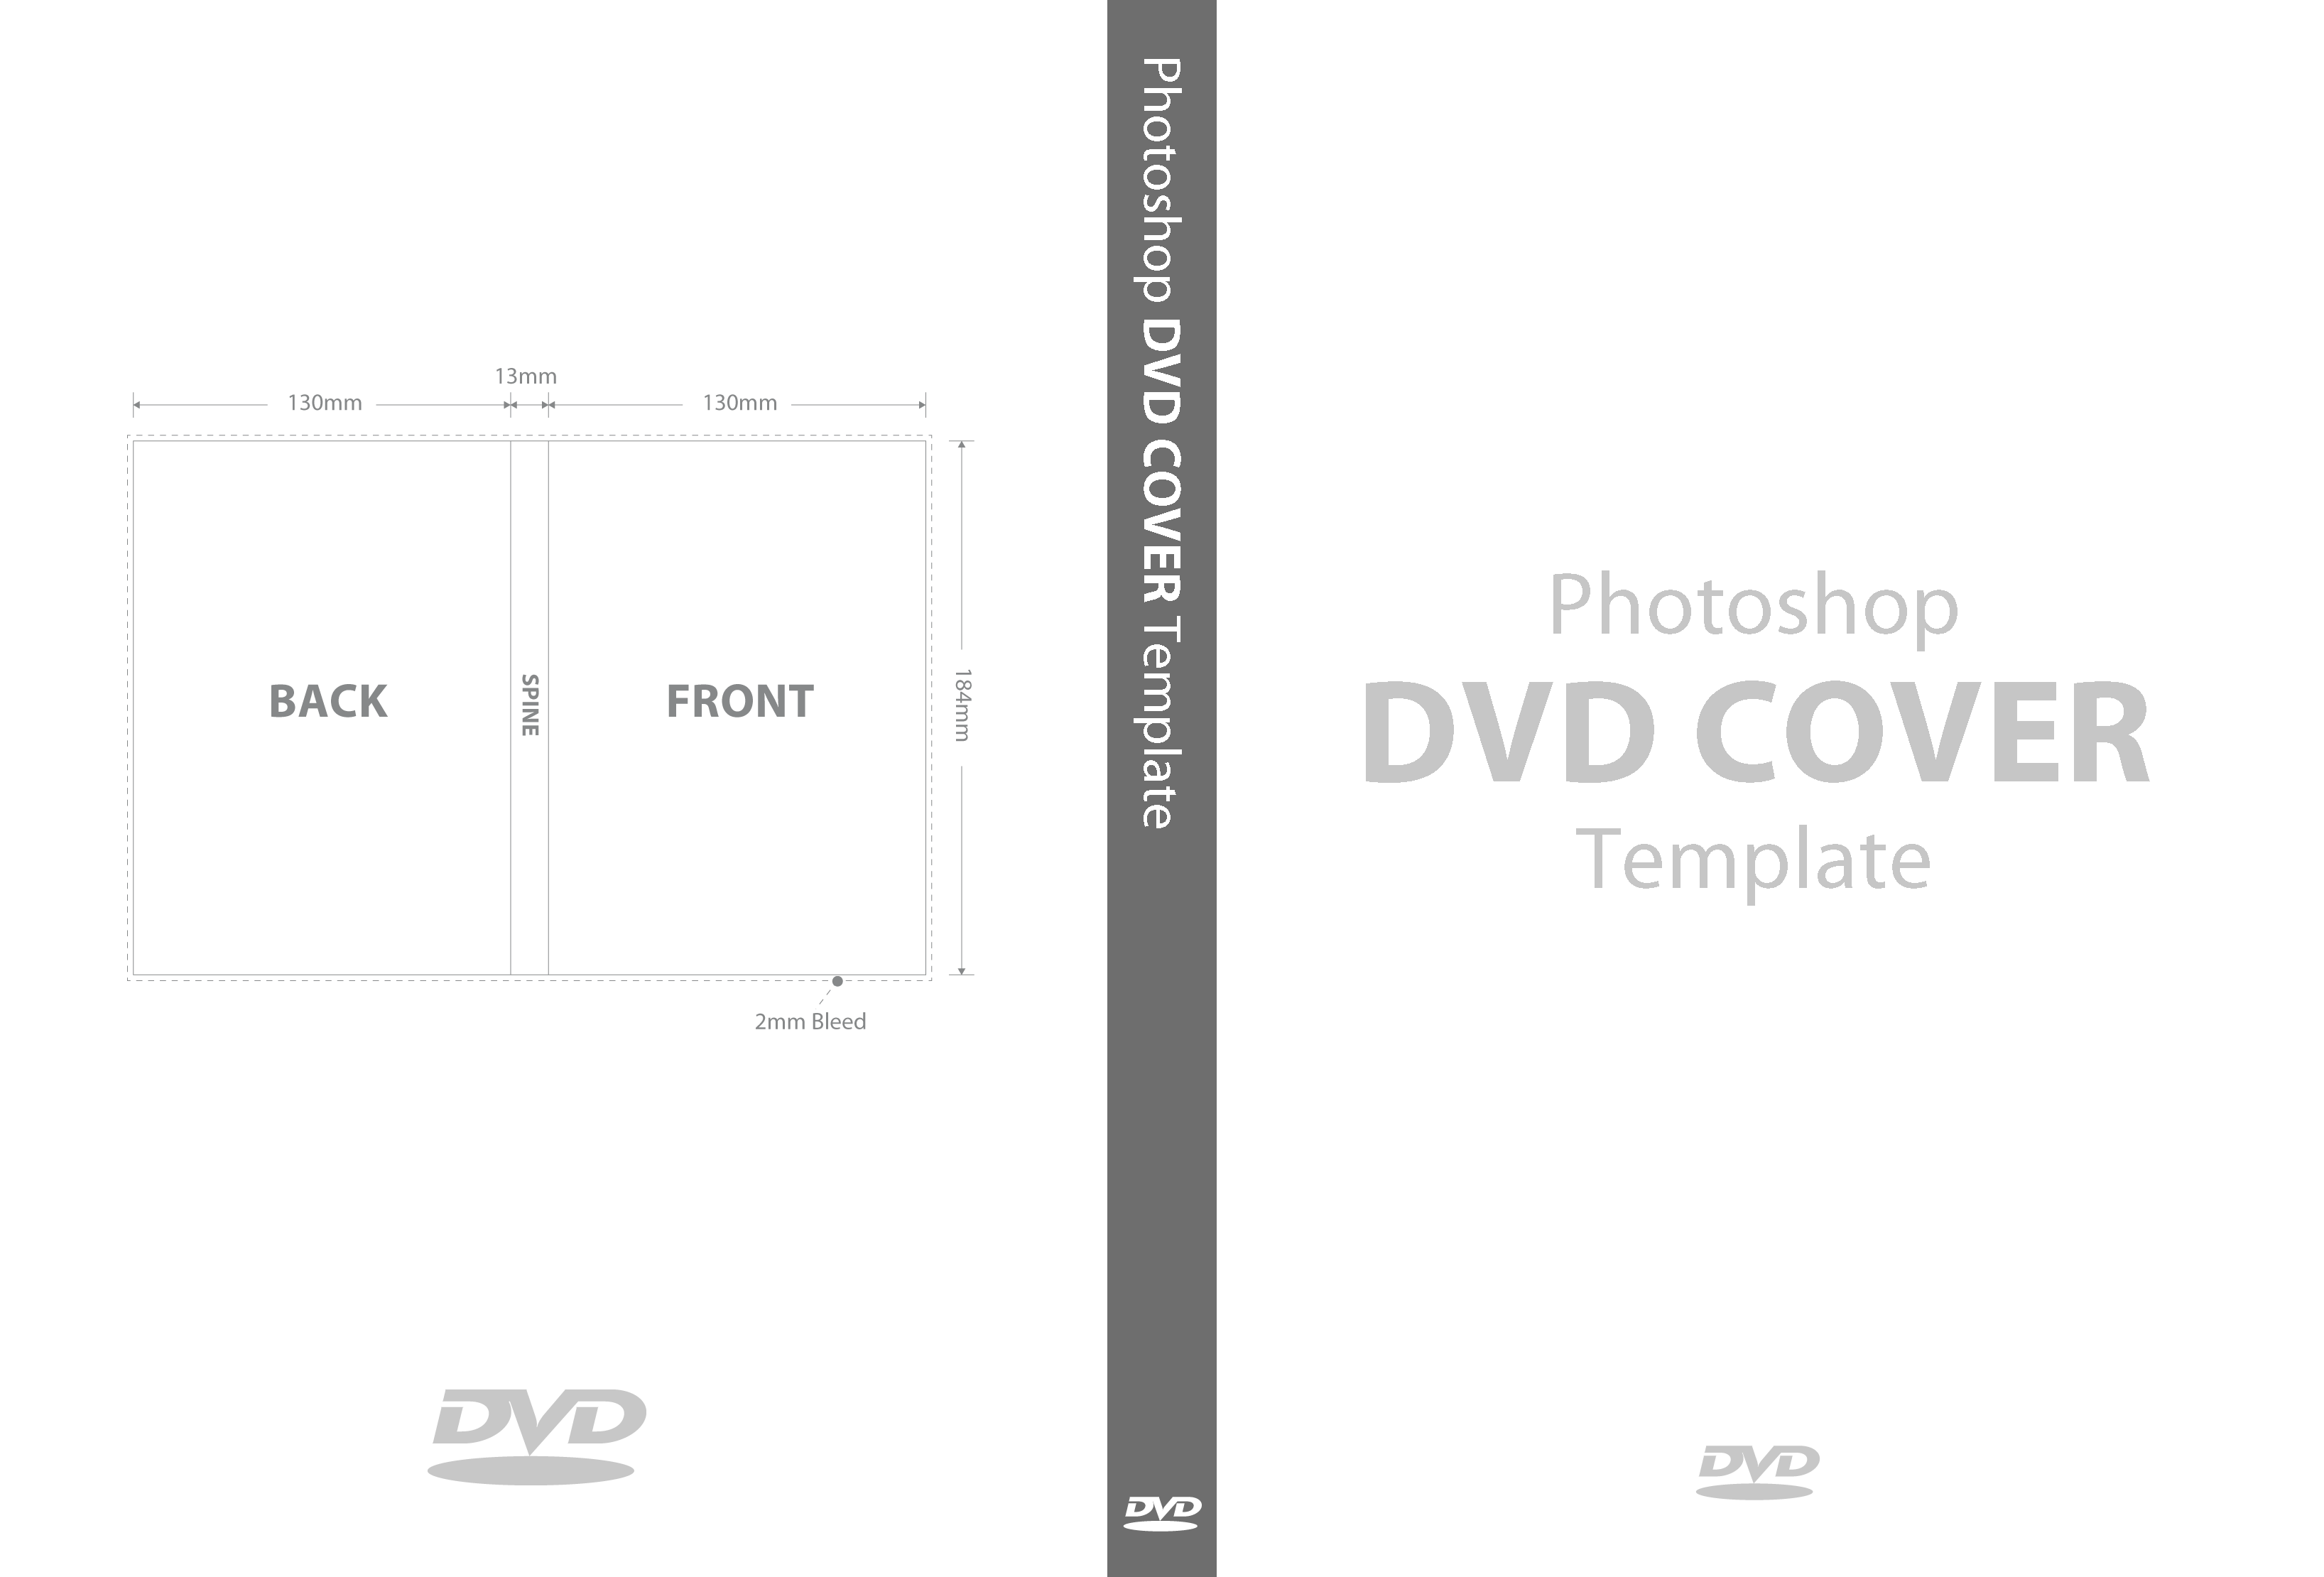 dvd template photoshop - 28 images - dvd duplication cd ...